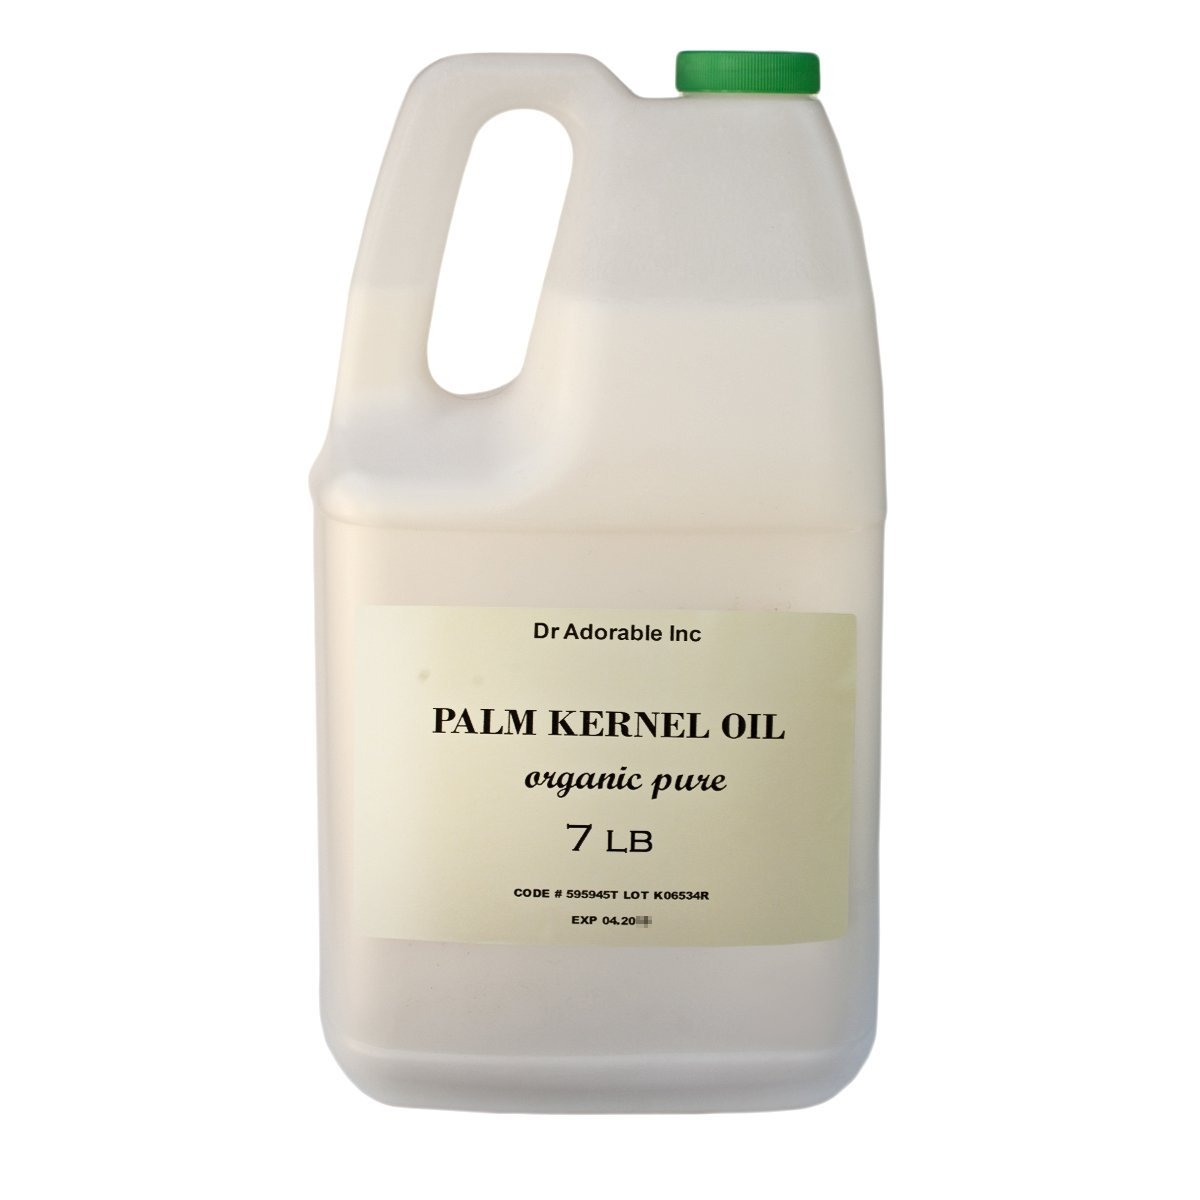 Palm Kernel Oil Pure Cold Pressed Organic 128 Oz / 7 Lb / One Gallone